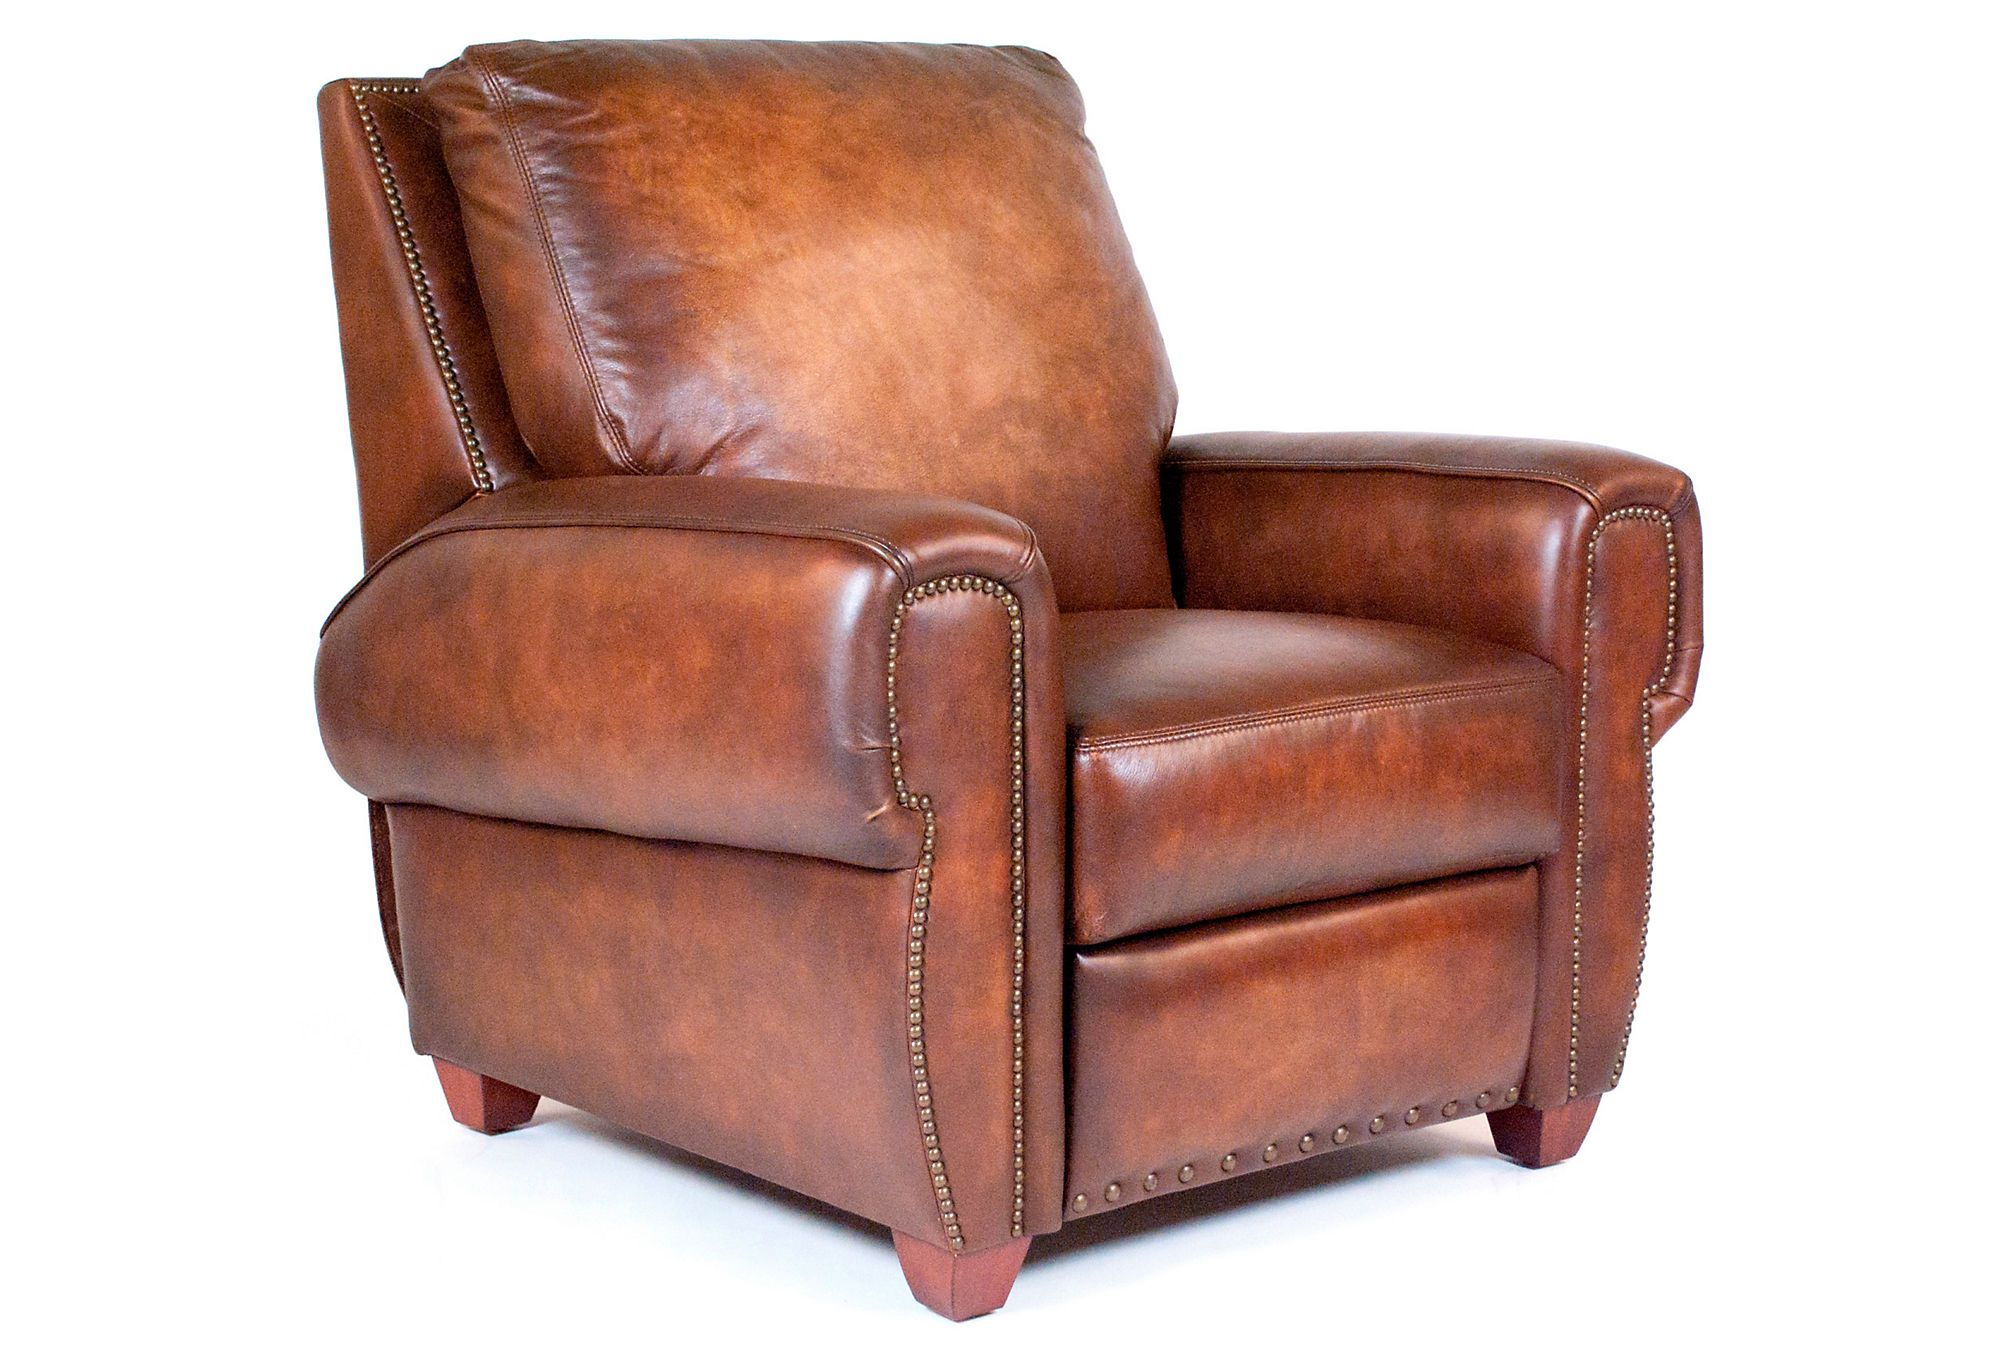 leather sofas auckland small for living rooms recliner on one kings lane today study